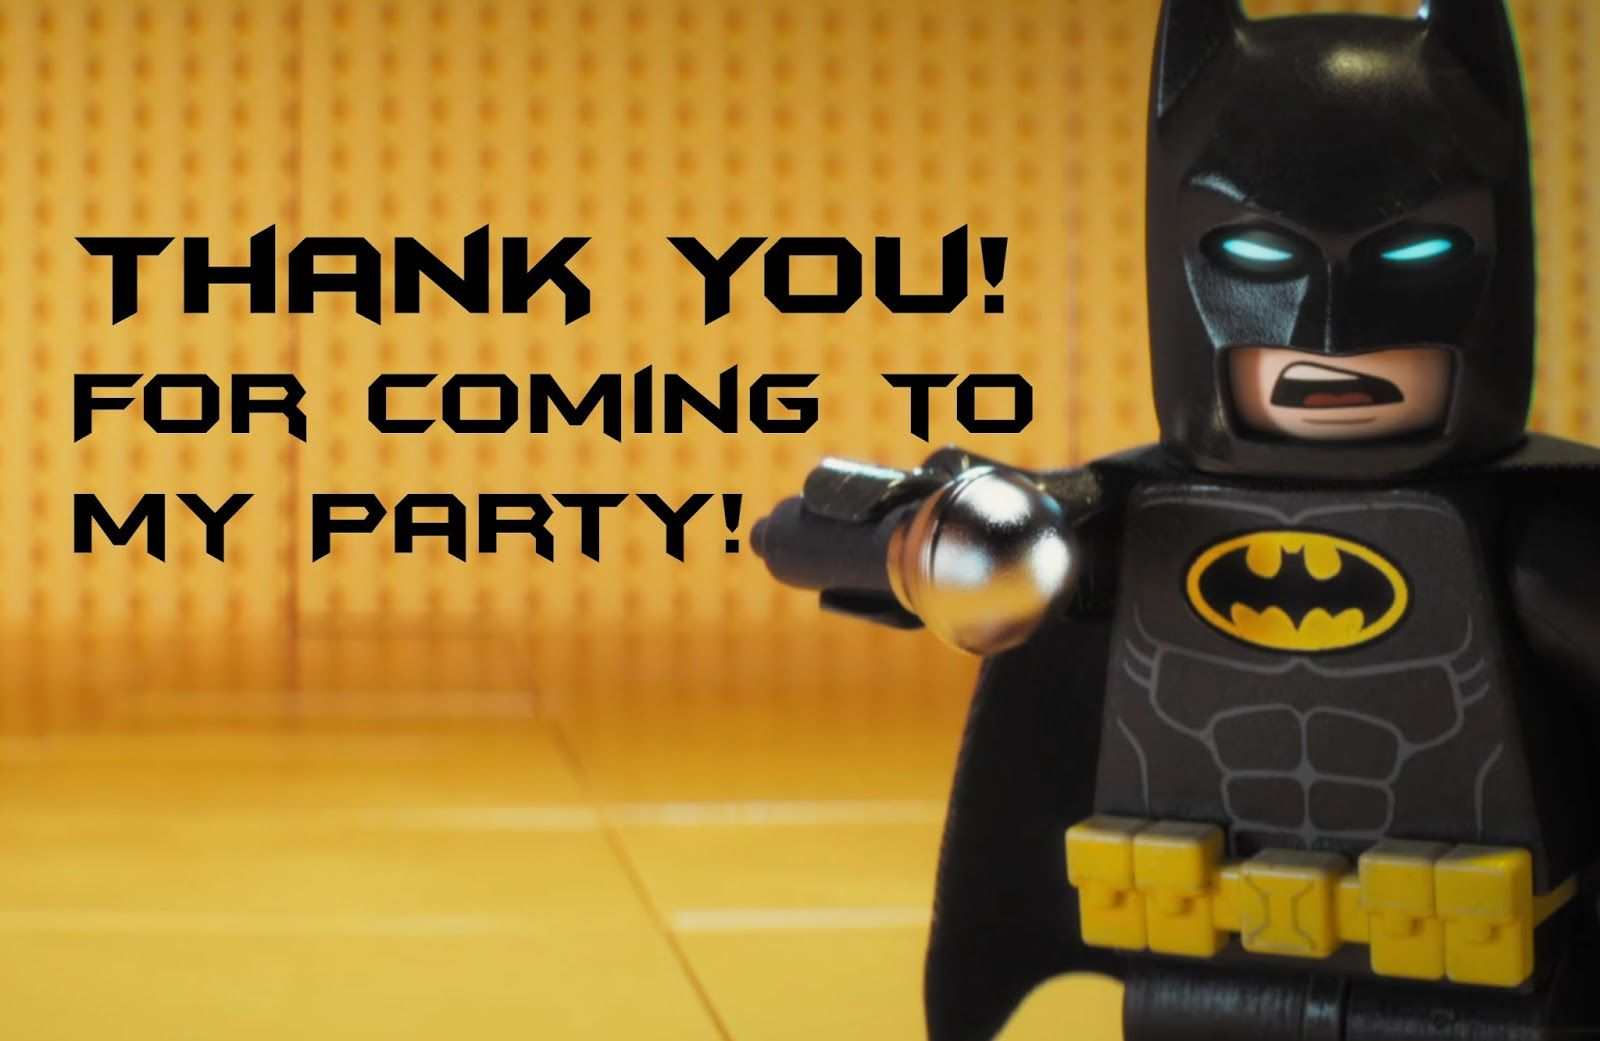 Lego Batman Thank You Cards | Lego Batman-Super Heros Printables - Lego Batman Invitations Free Printable